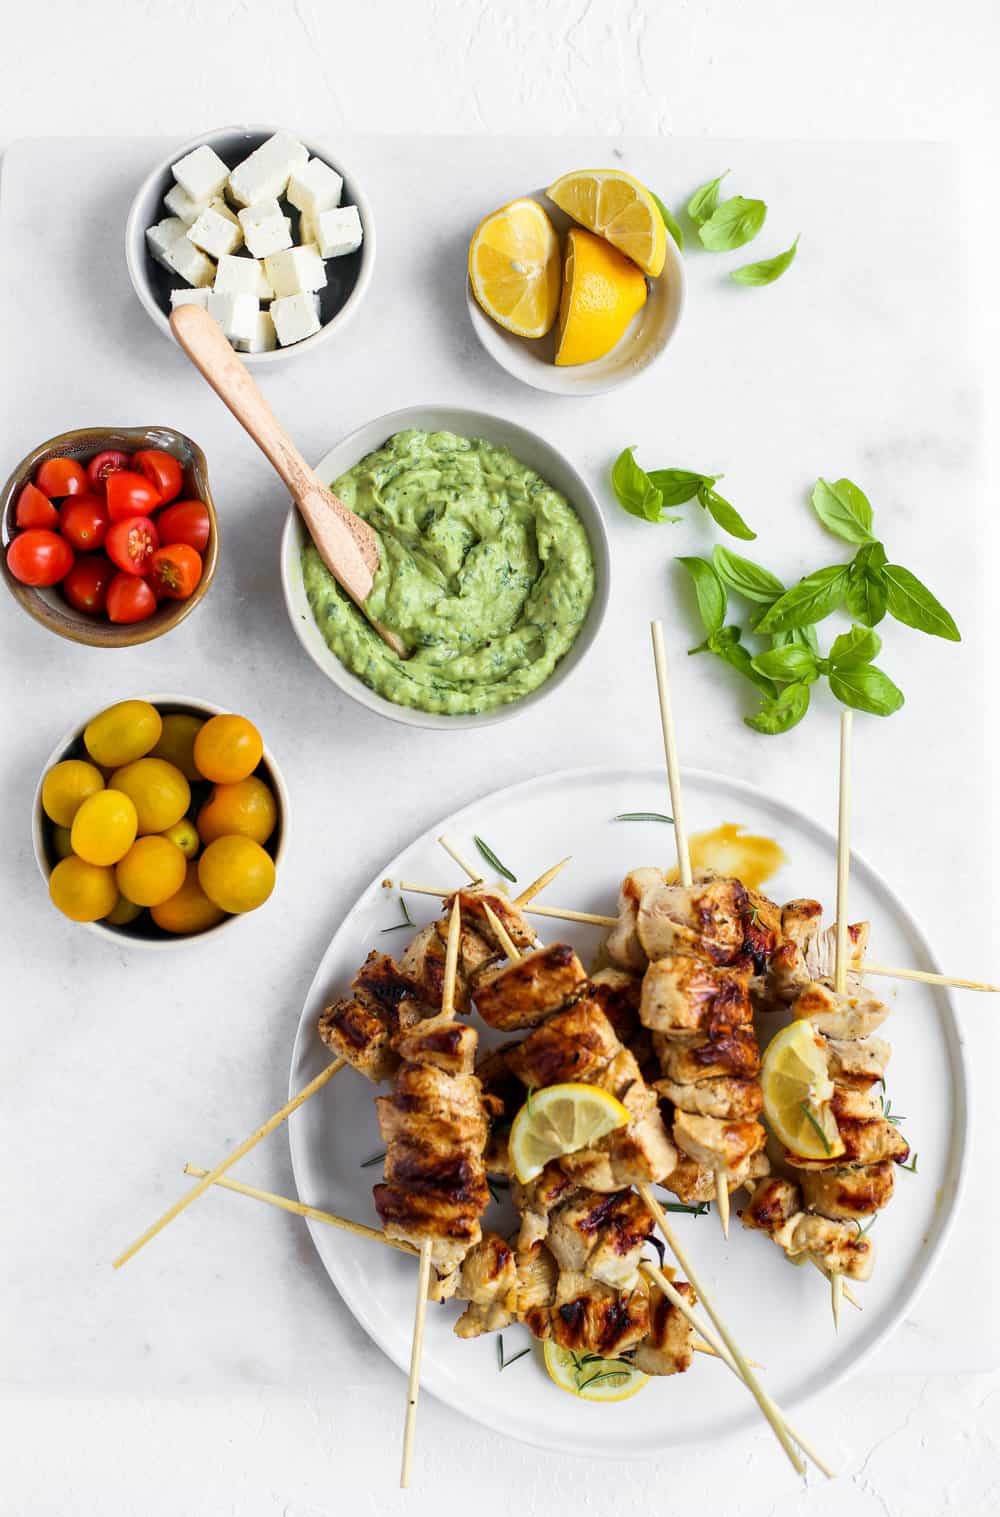 Lemon Garlic Chicken Skewer Bowls with green goddess dressing, tomatoes, feta, and lemons in a white bowl